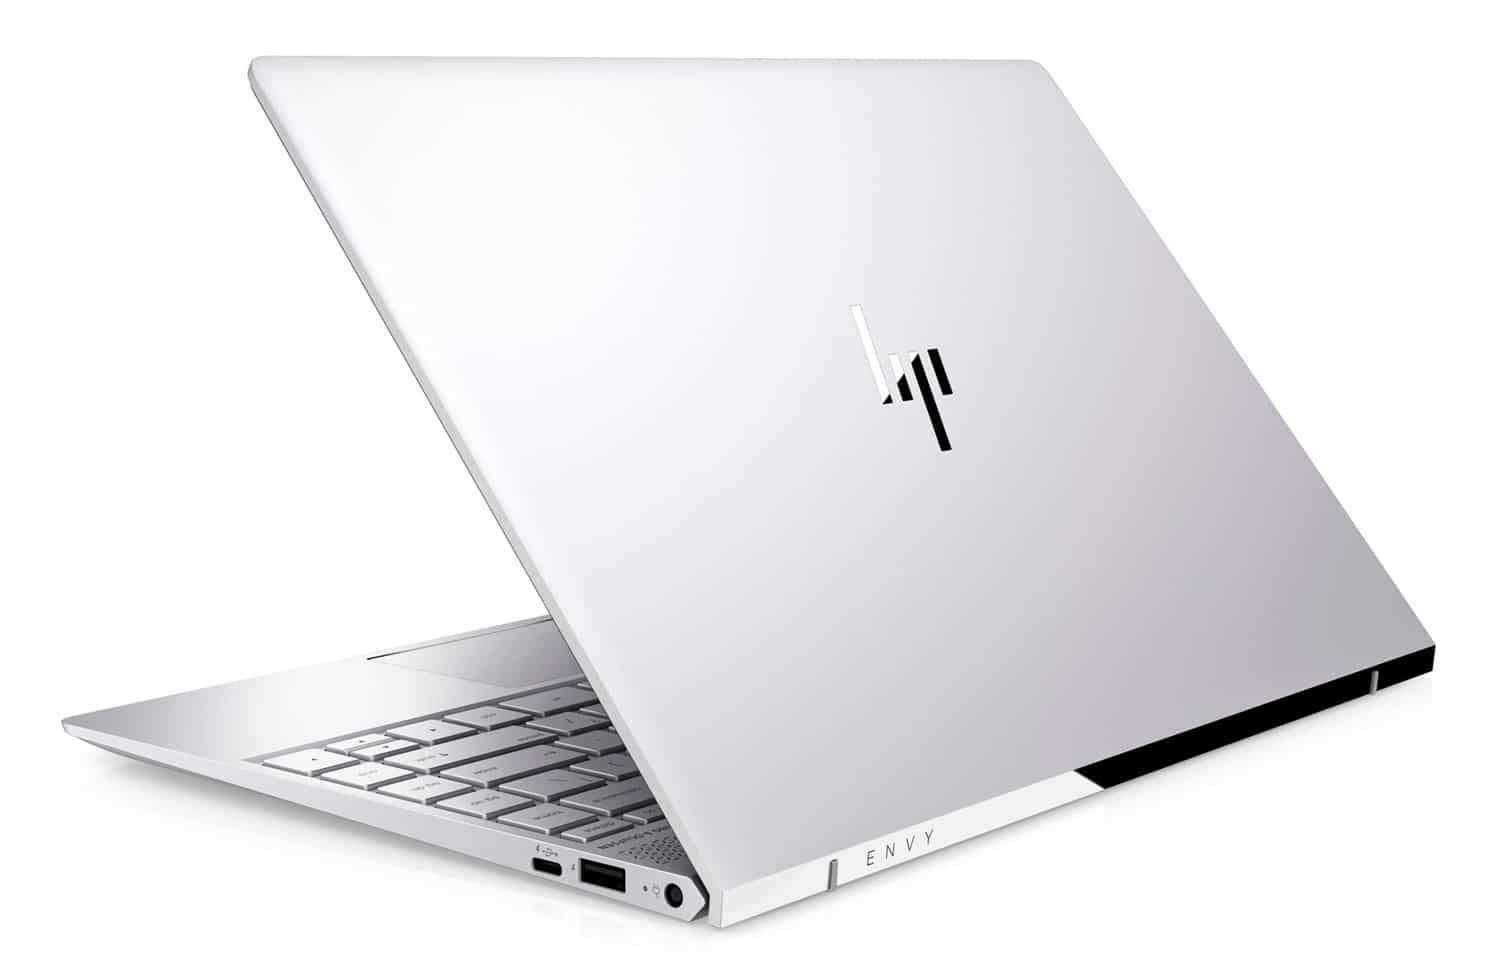 HP Envy 13-ad011nf, Ultrabook 13 pouces IPS SSD 512 Go i7 8 Go promo 999€